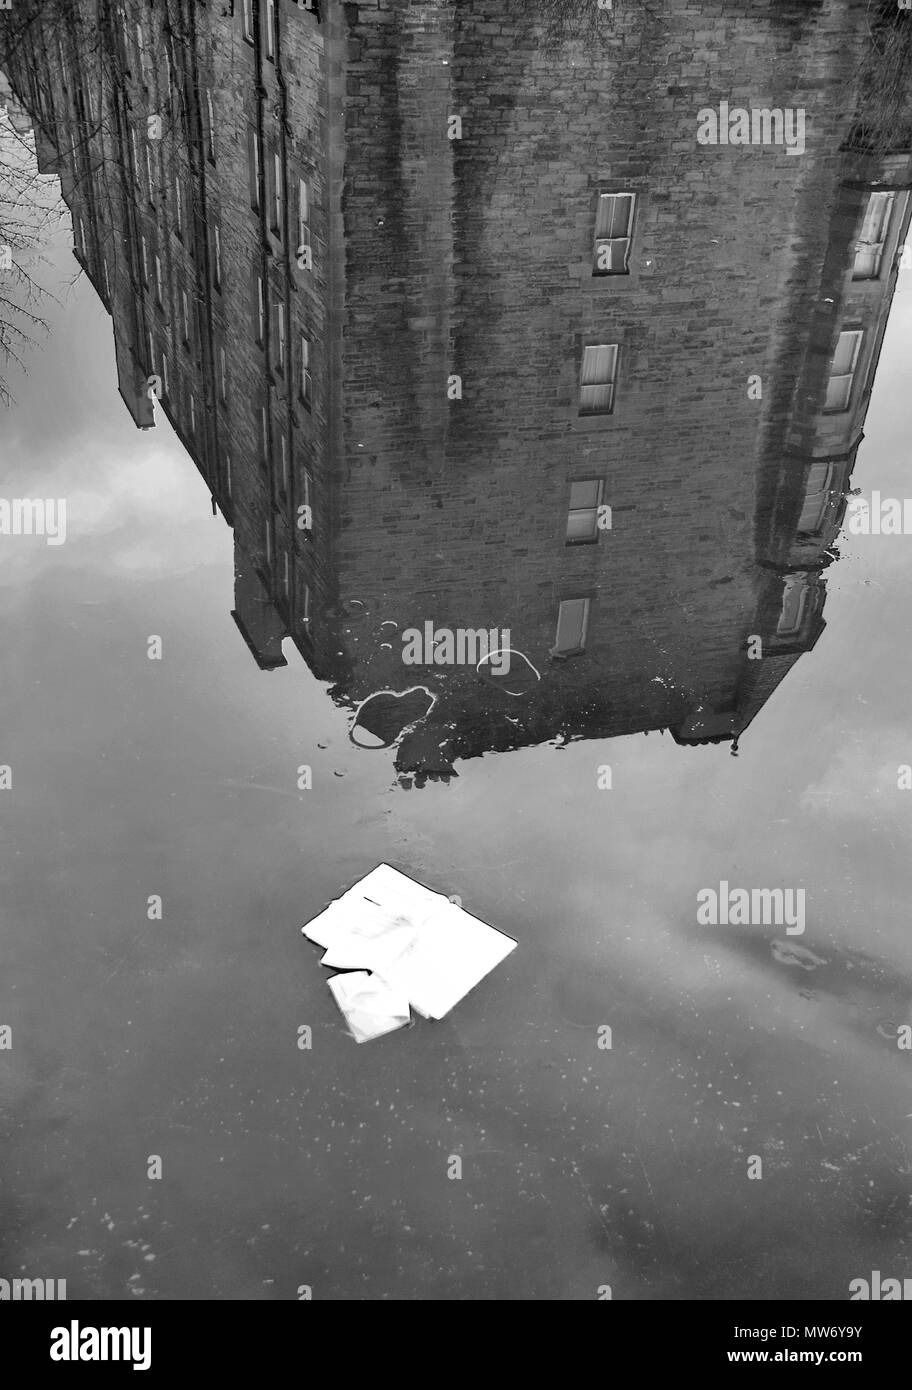 EDINBURGH, SCOTLAND- JANUARY 7TH 2009: A black and white photograph of a reflection of a tenement block in the canal water. - Stock Image